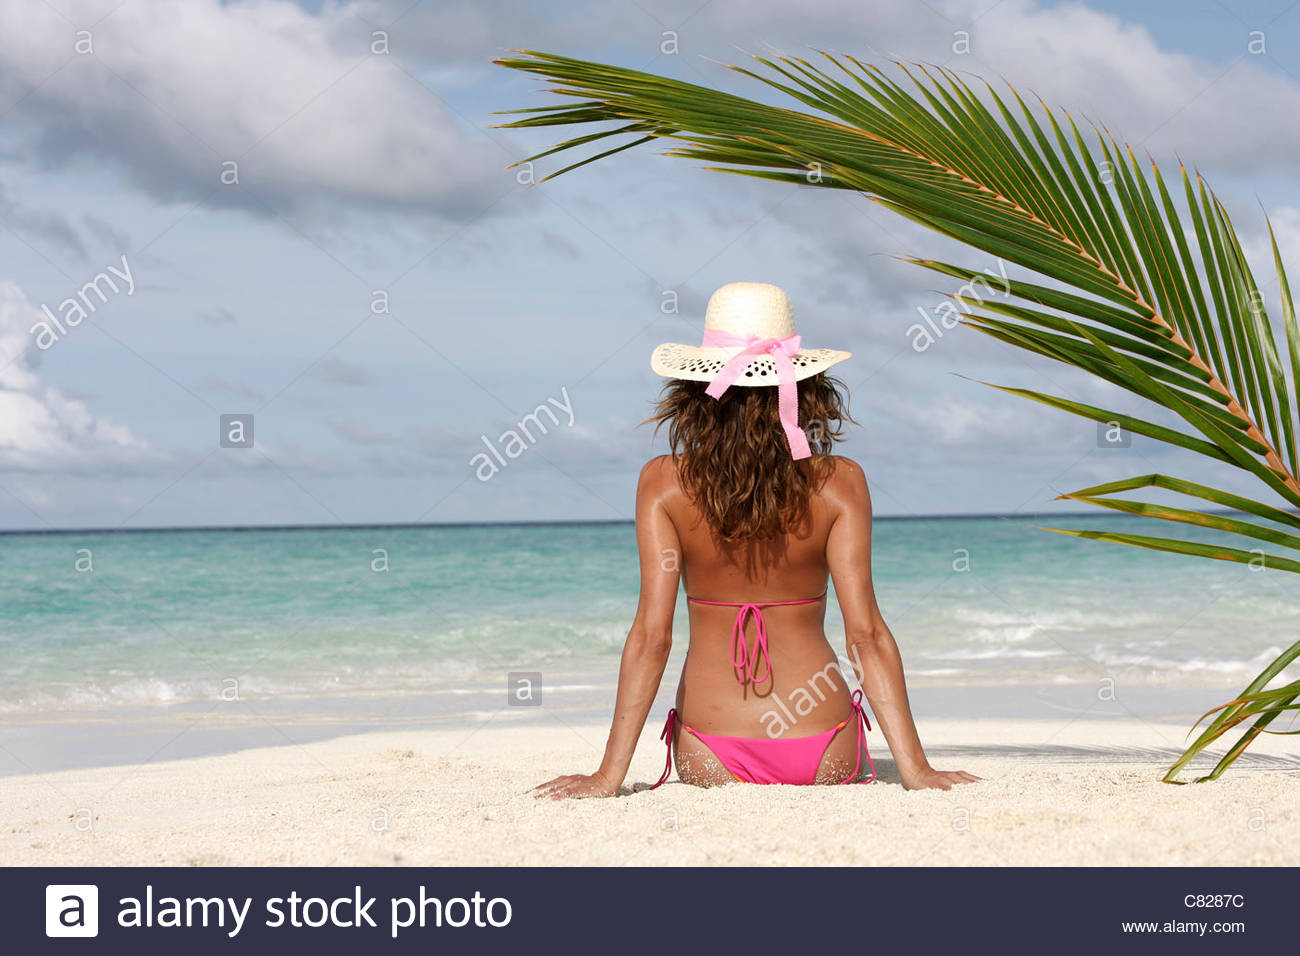 Woman sitting on the beach - Stock Image